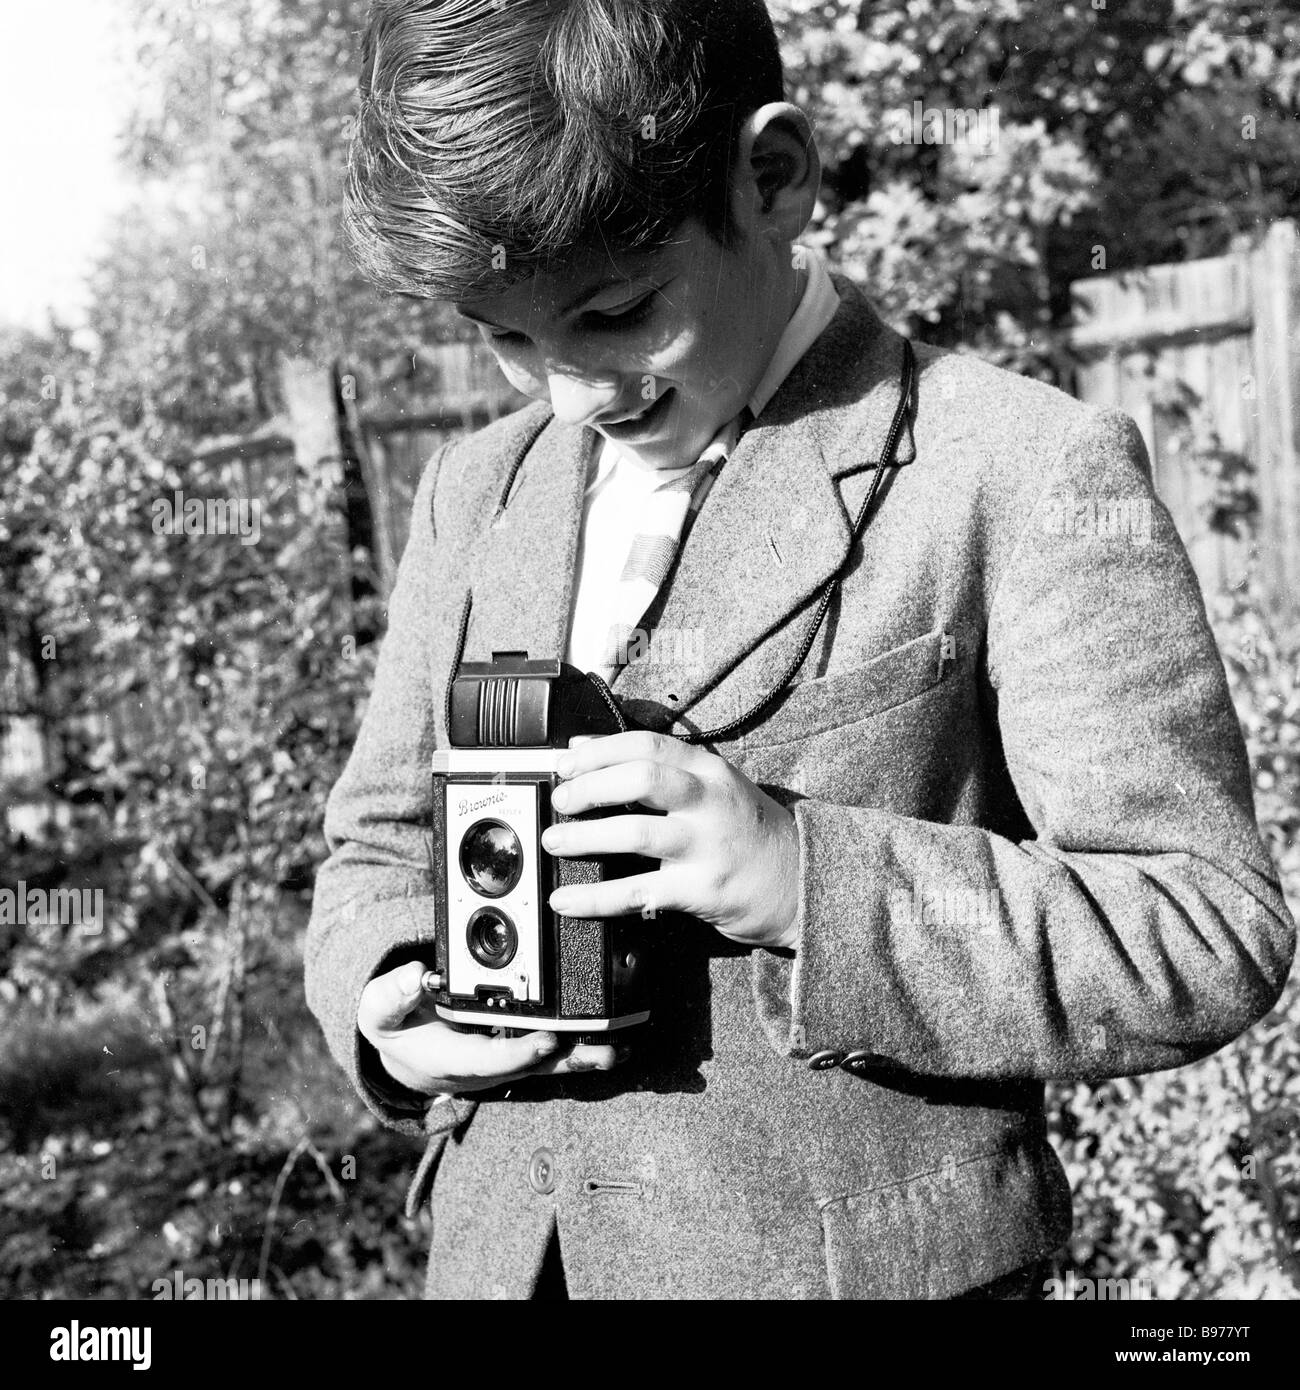 Looking down his viewfinder, a young boy in garden uses a Kodak Brownie reflex box film camera to take a photo, Stock Photo